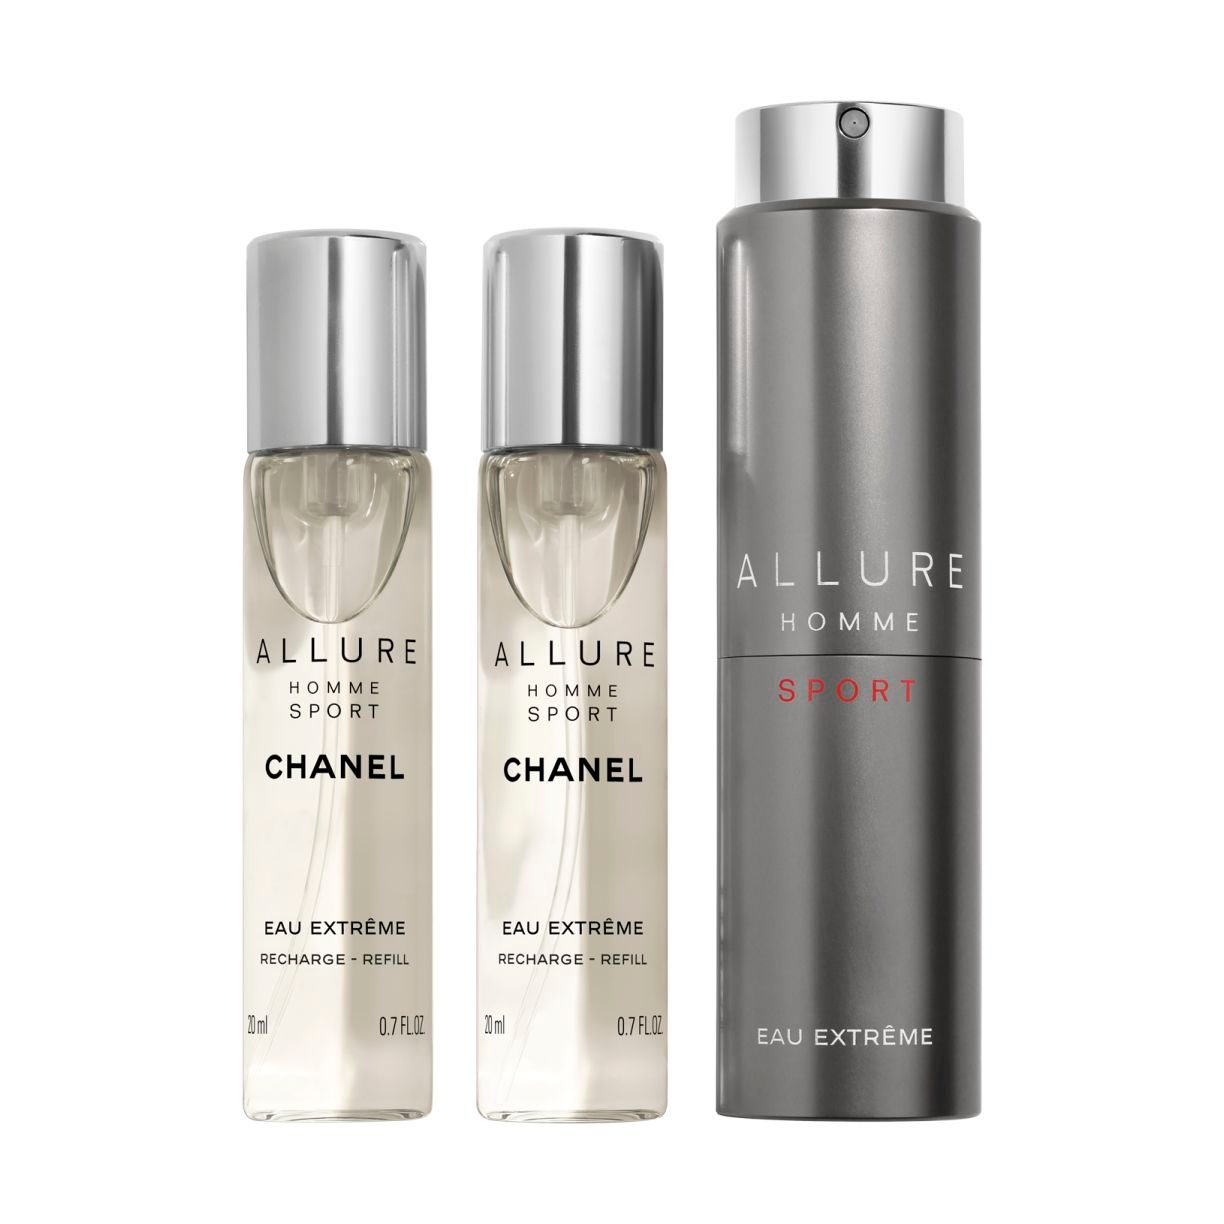 ALLURE HOMME SPORT EAU EXTRÊME REFILLABLE TRAVEL SPRAY 3x20ml